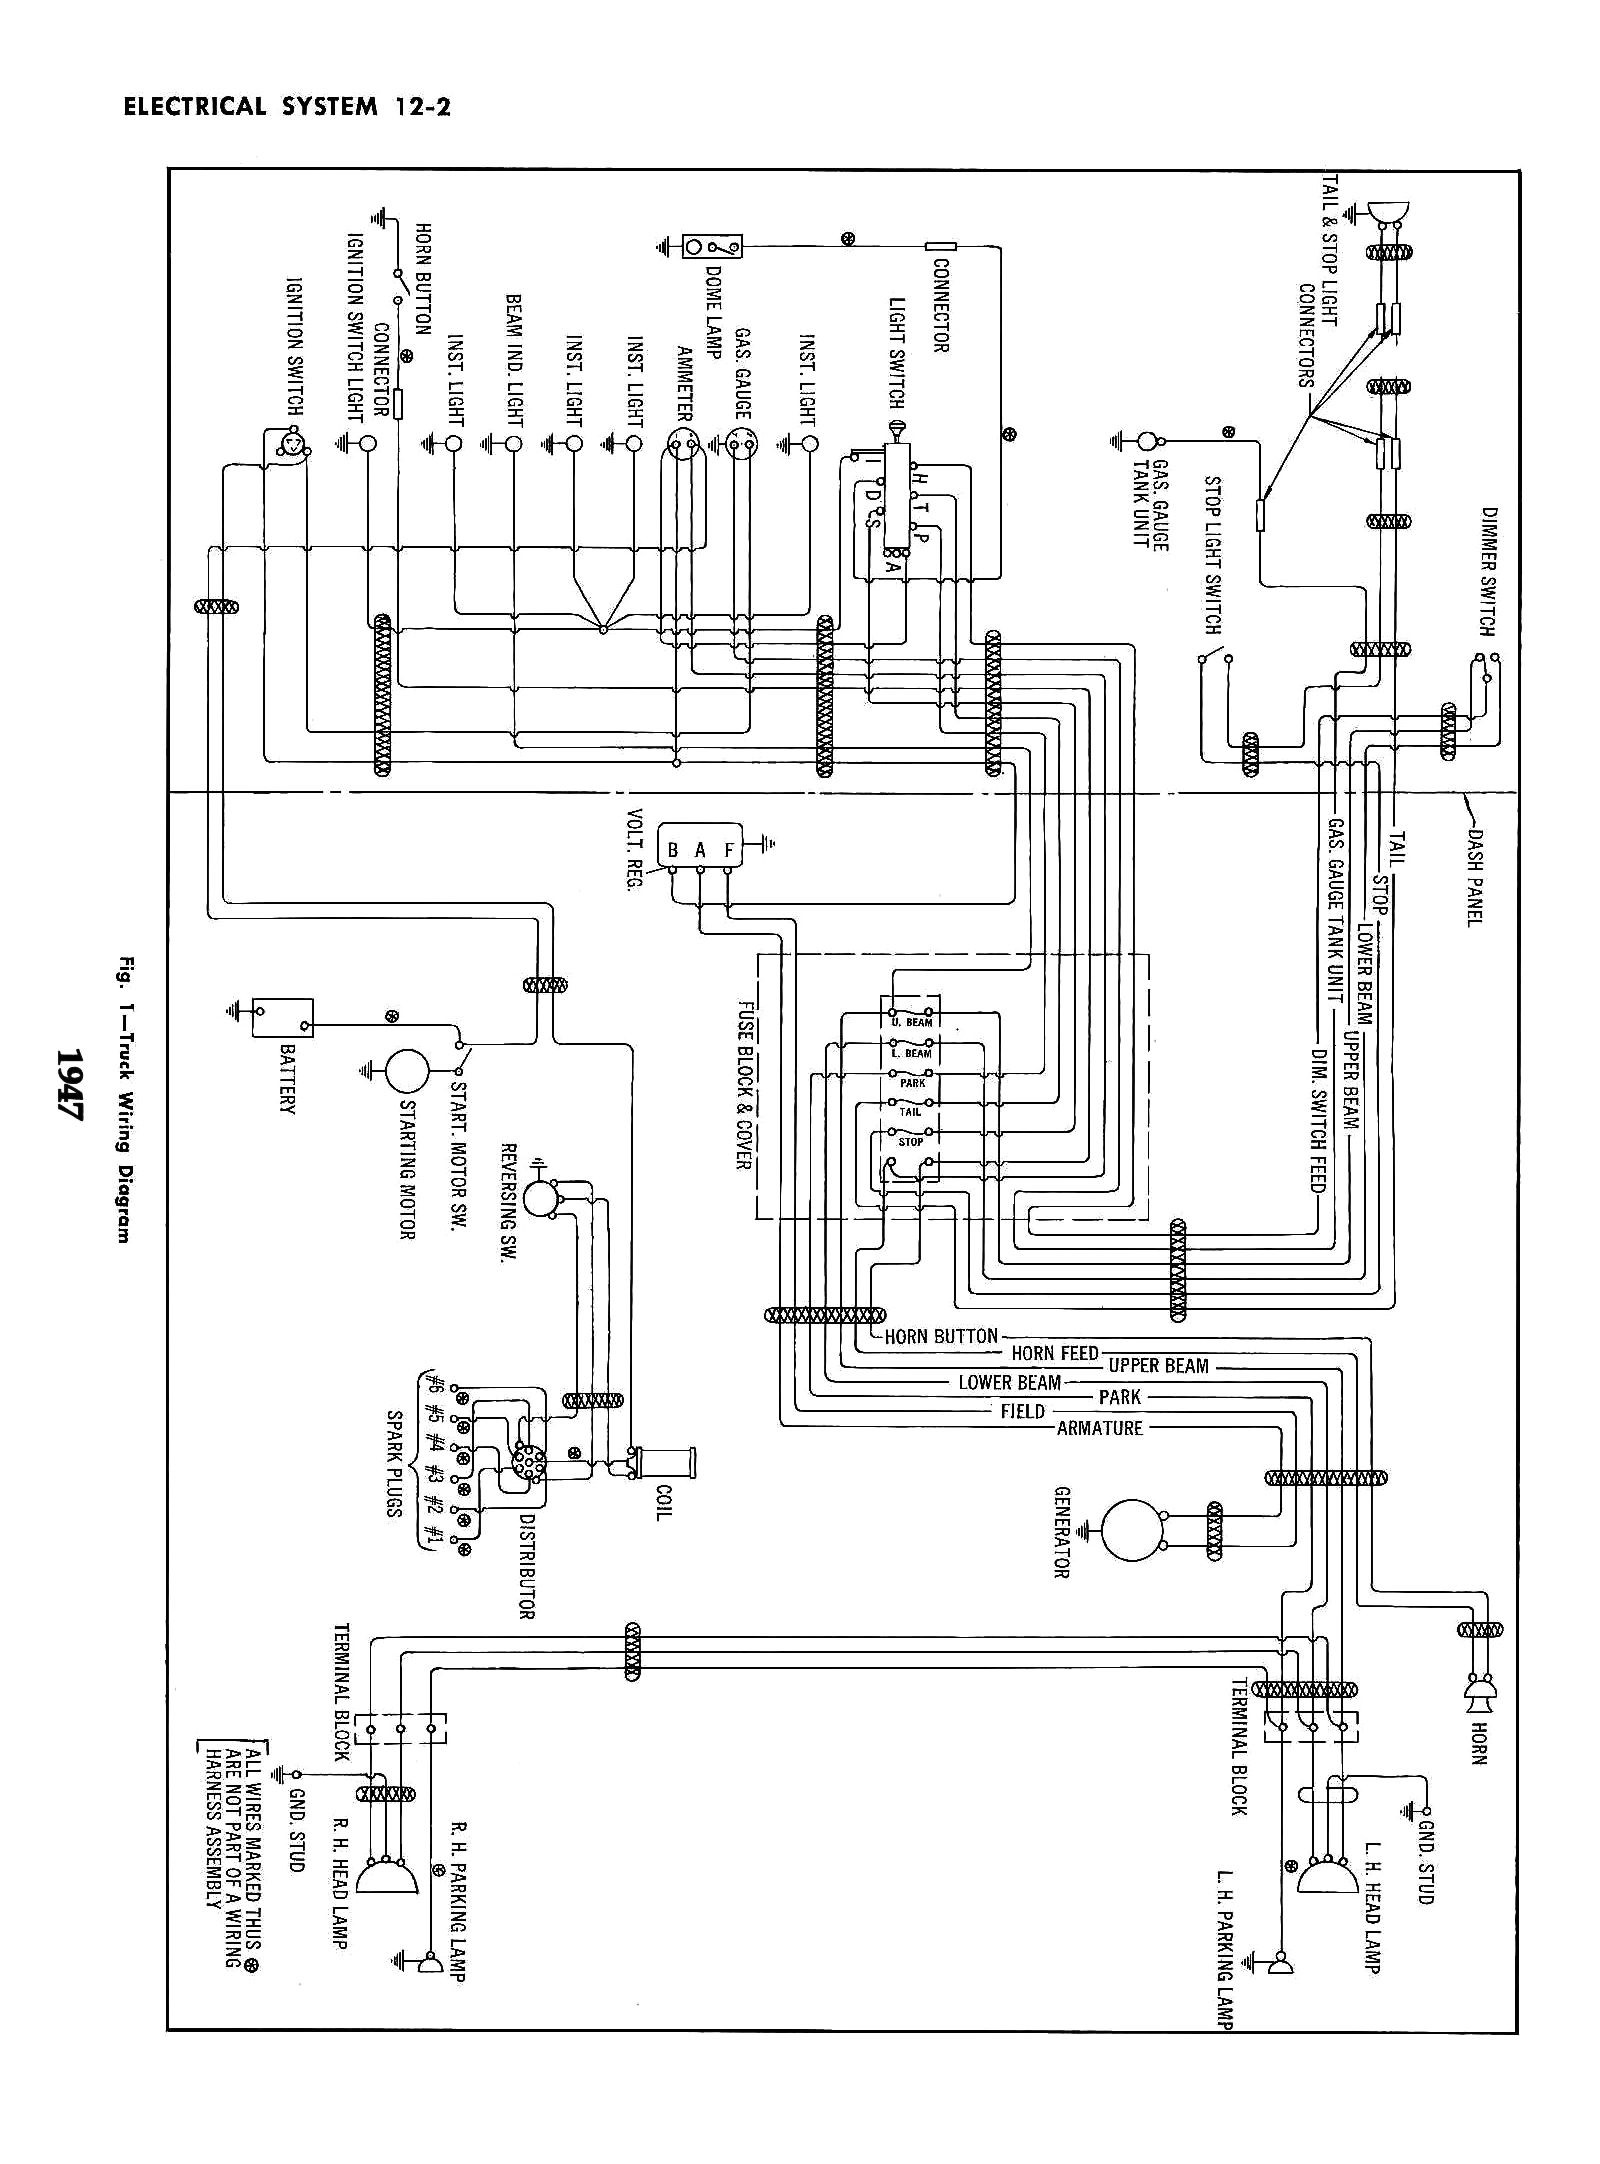 hight resolution of 1953 chevy truck wiring diagram chevy wiring diagrams